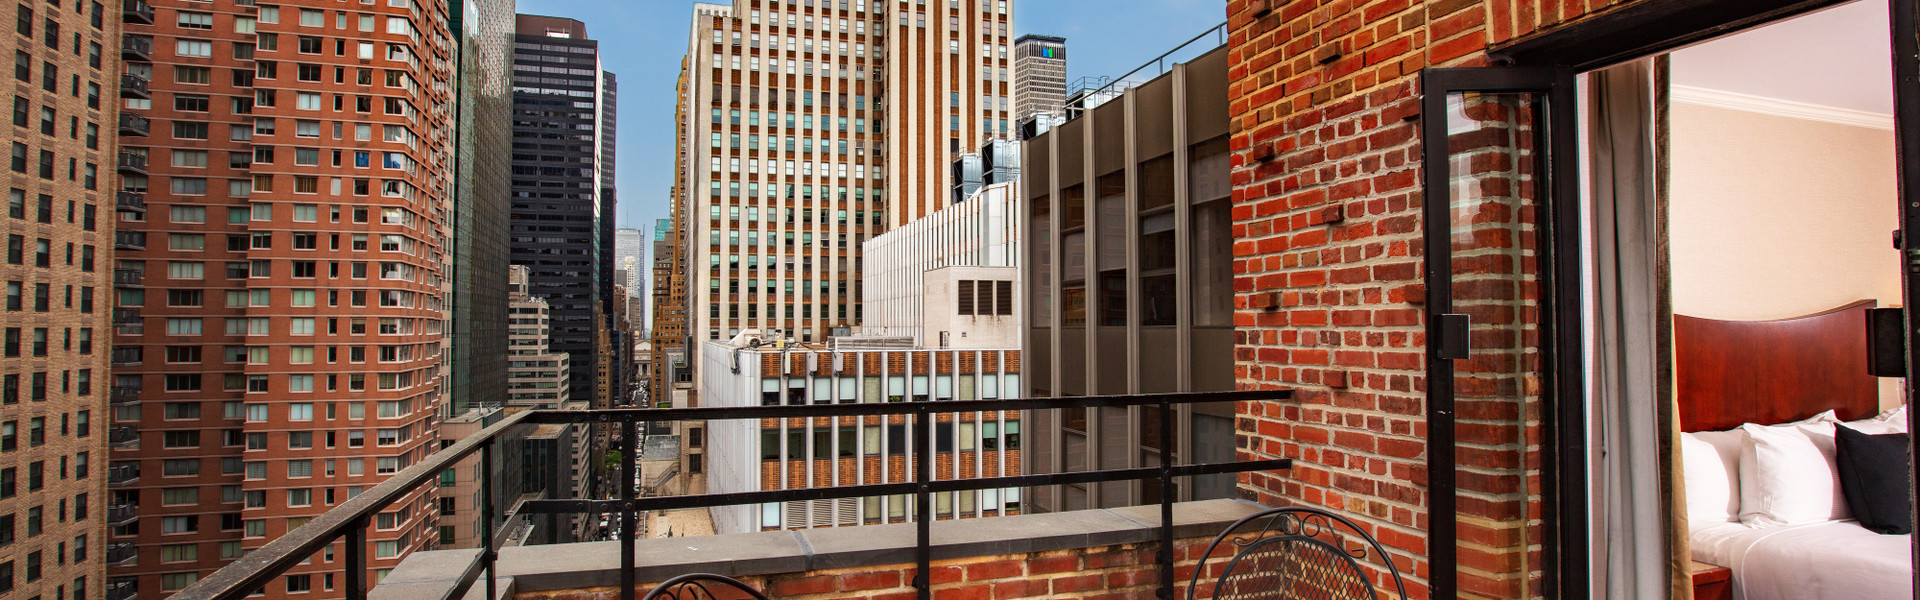 A View from our Midtown Manhattan Hotel Suites   Westgate New York Grand Central Hotel   New York City Hotel Suites for Families